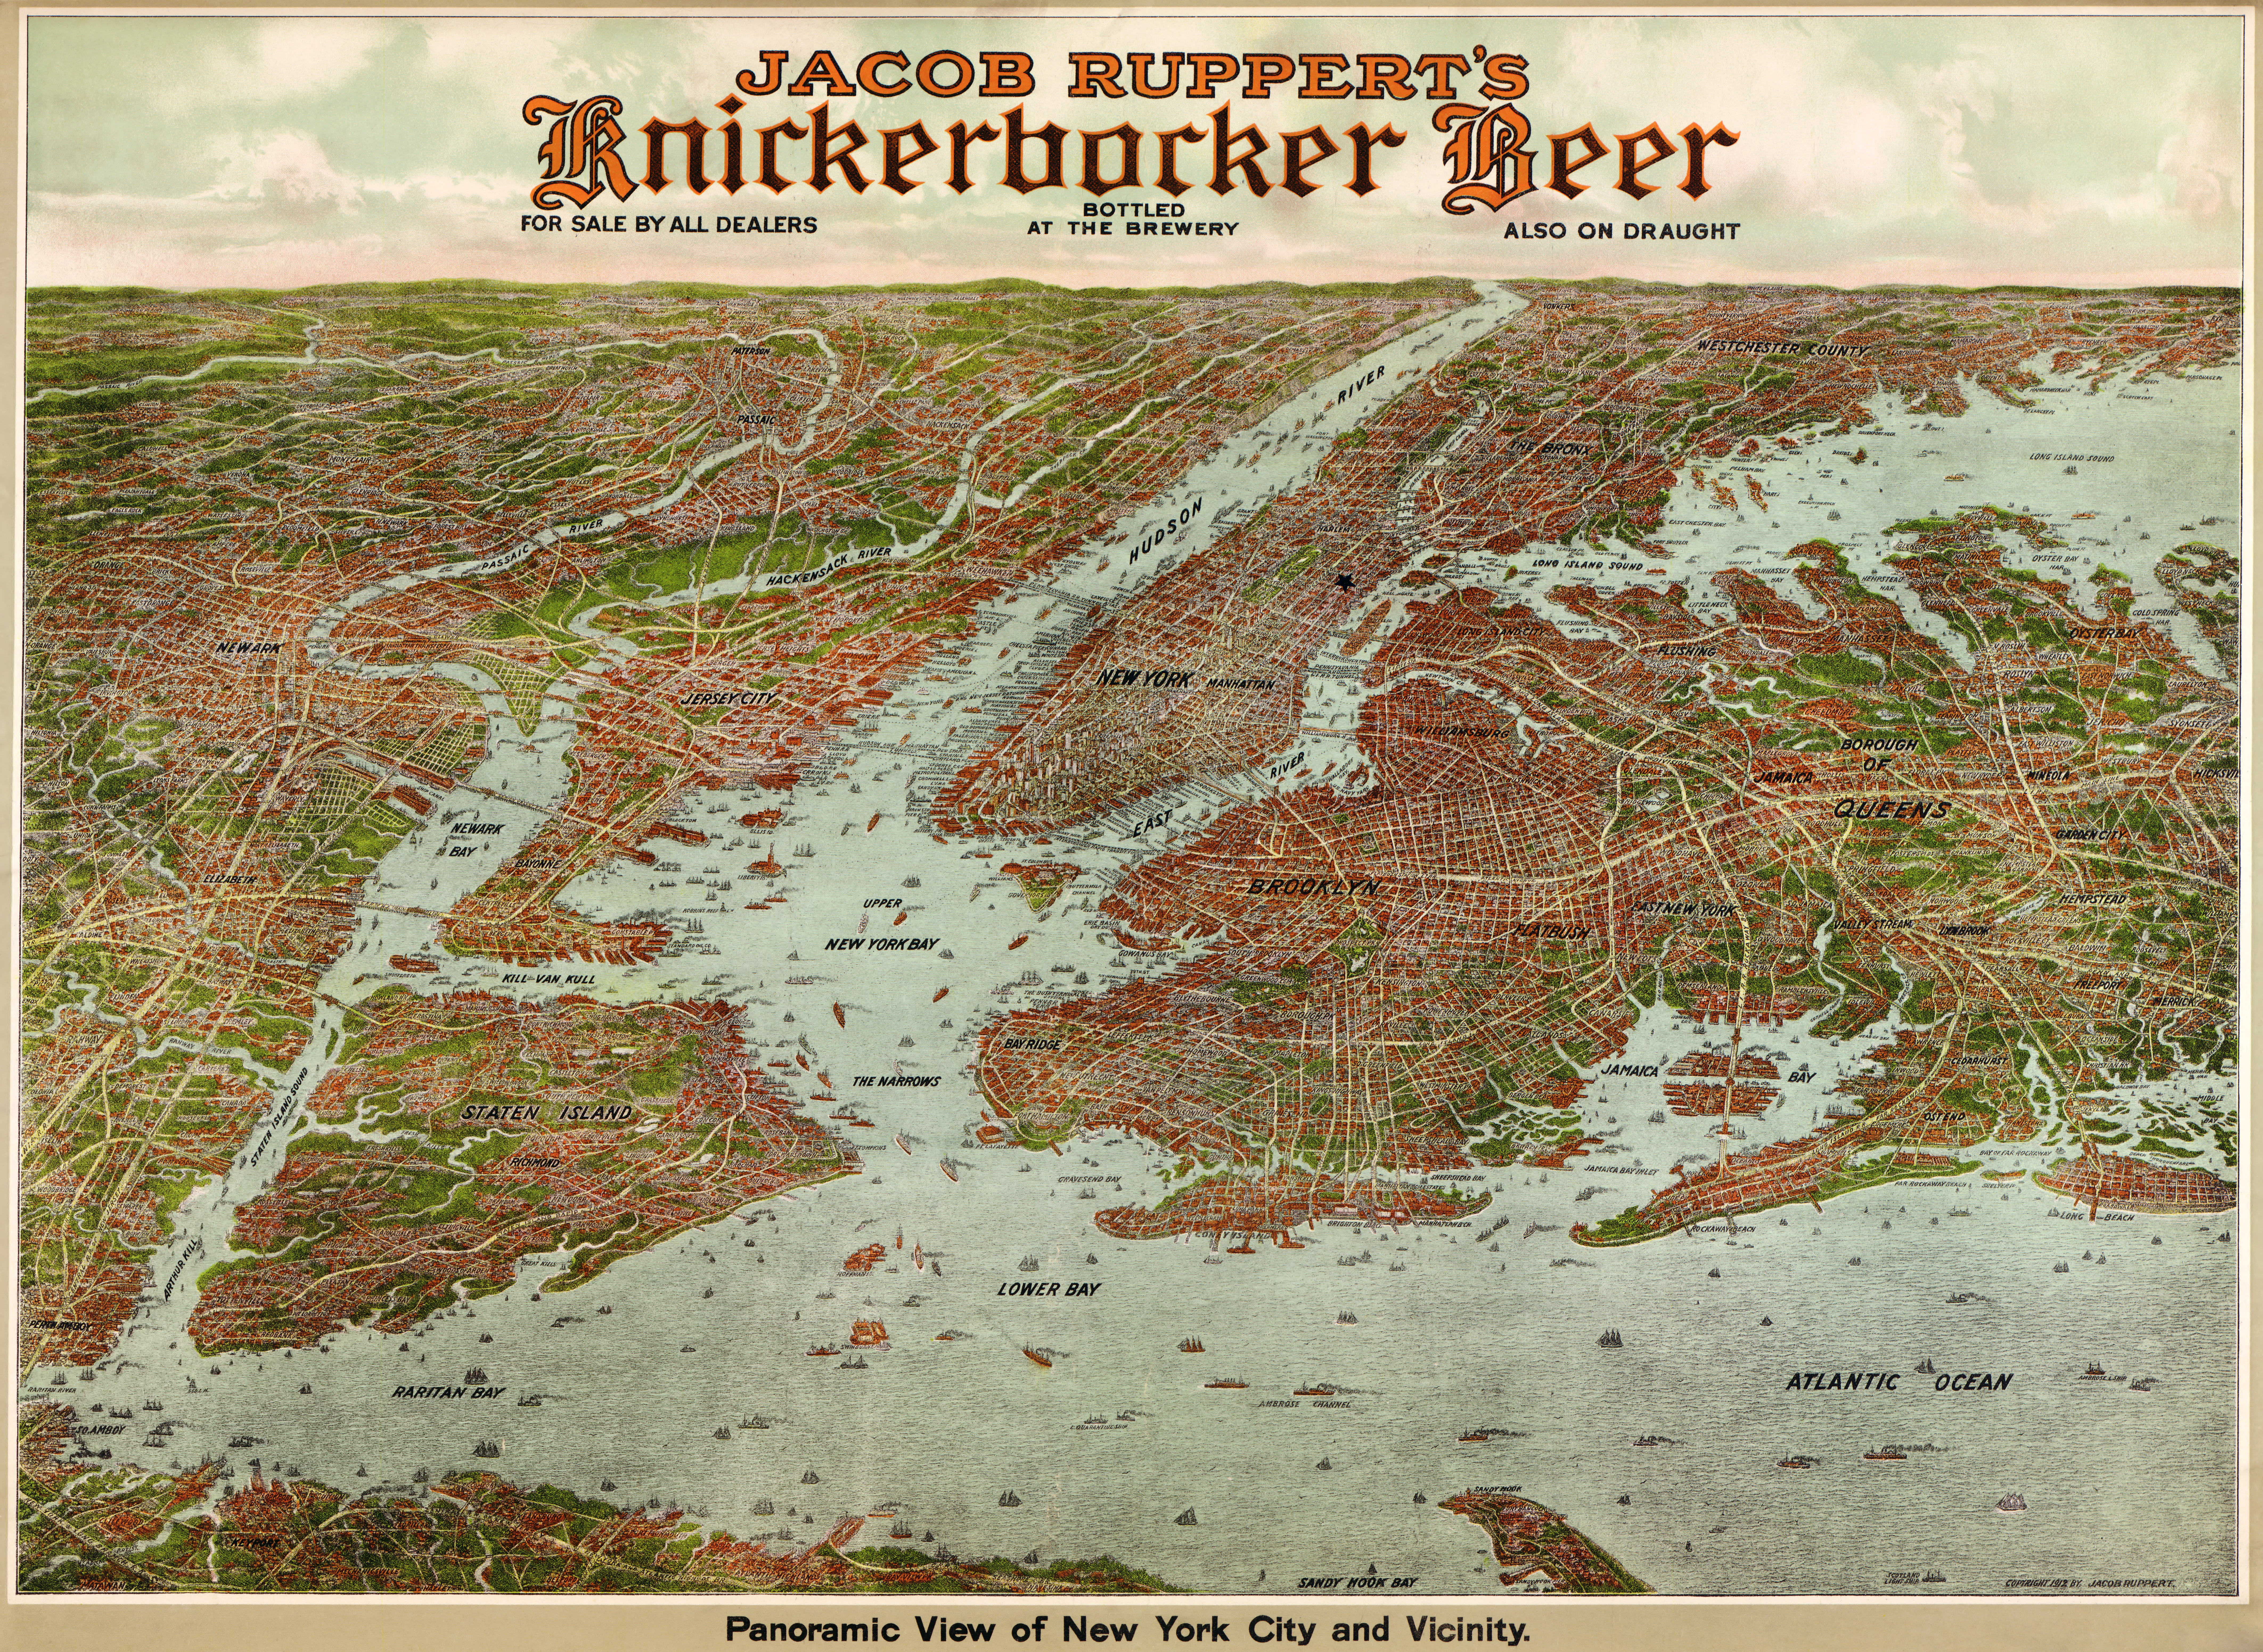 New York City  by Knickerbocker Beer  1912  Dwnld  Full Size  22mb